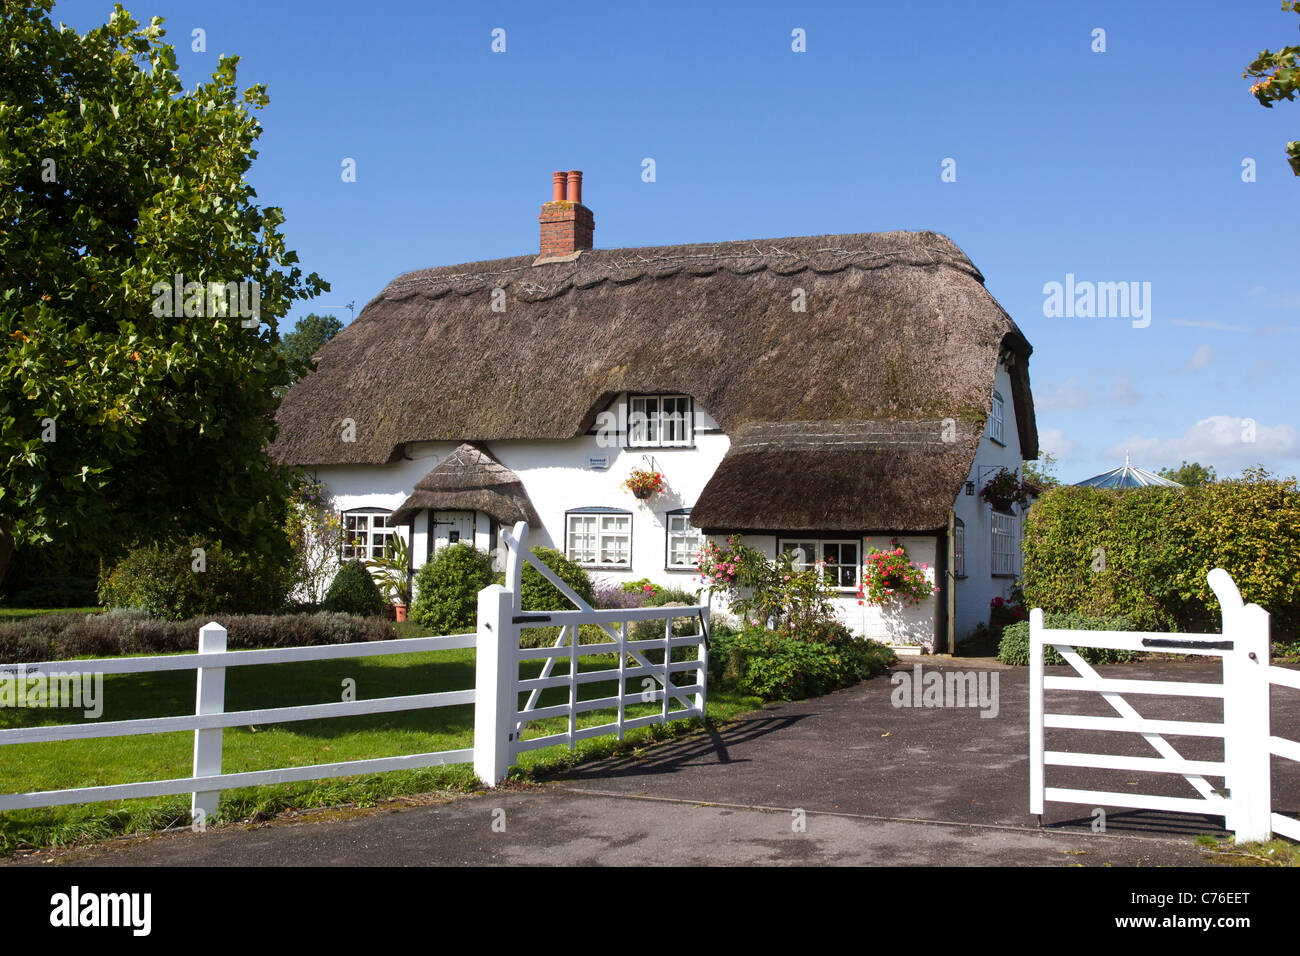 Picturesque Thatched Cottage Allington near Devizes in Wiltshire - Stock Image